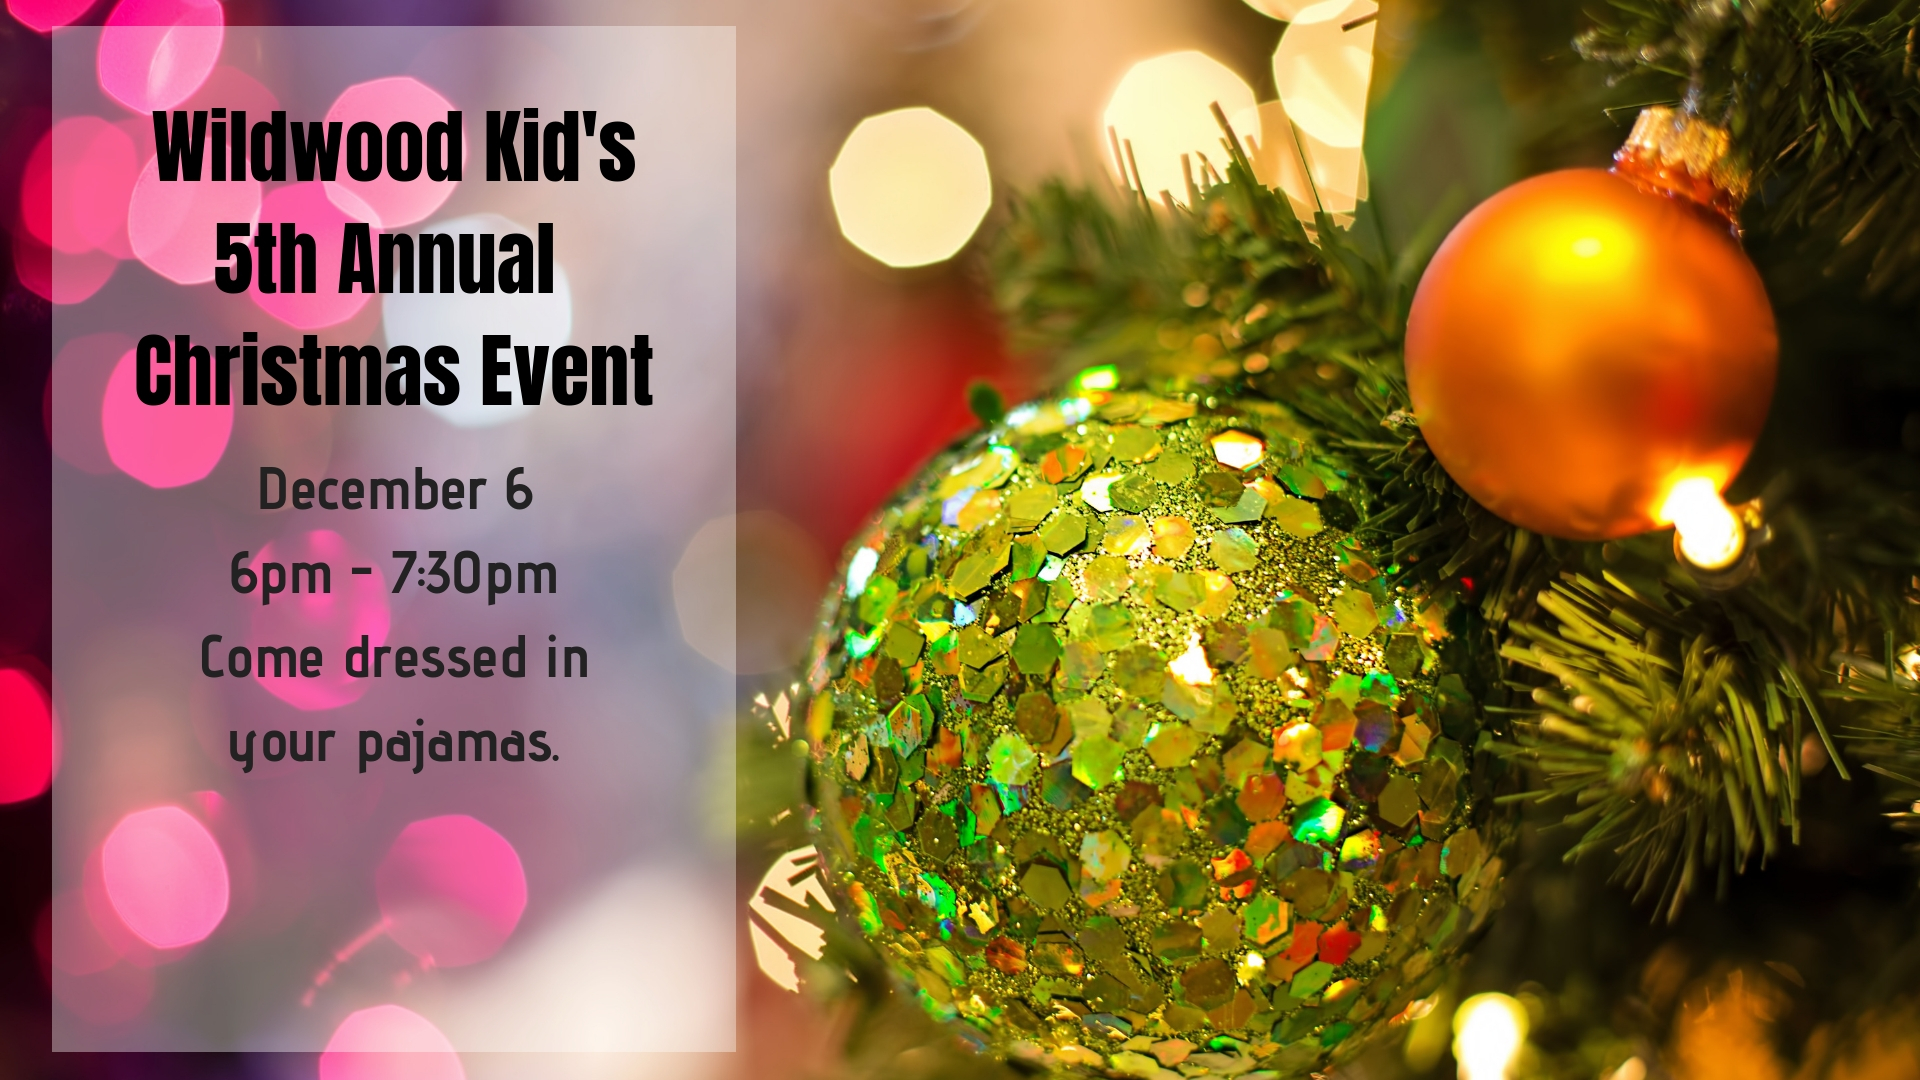 Wildwood Kid's 5th Annual Christmas Event